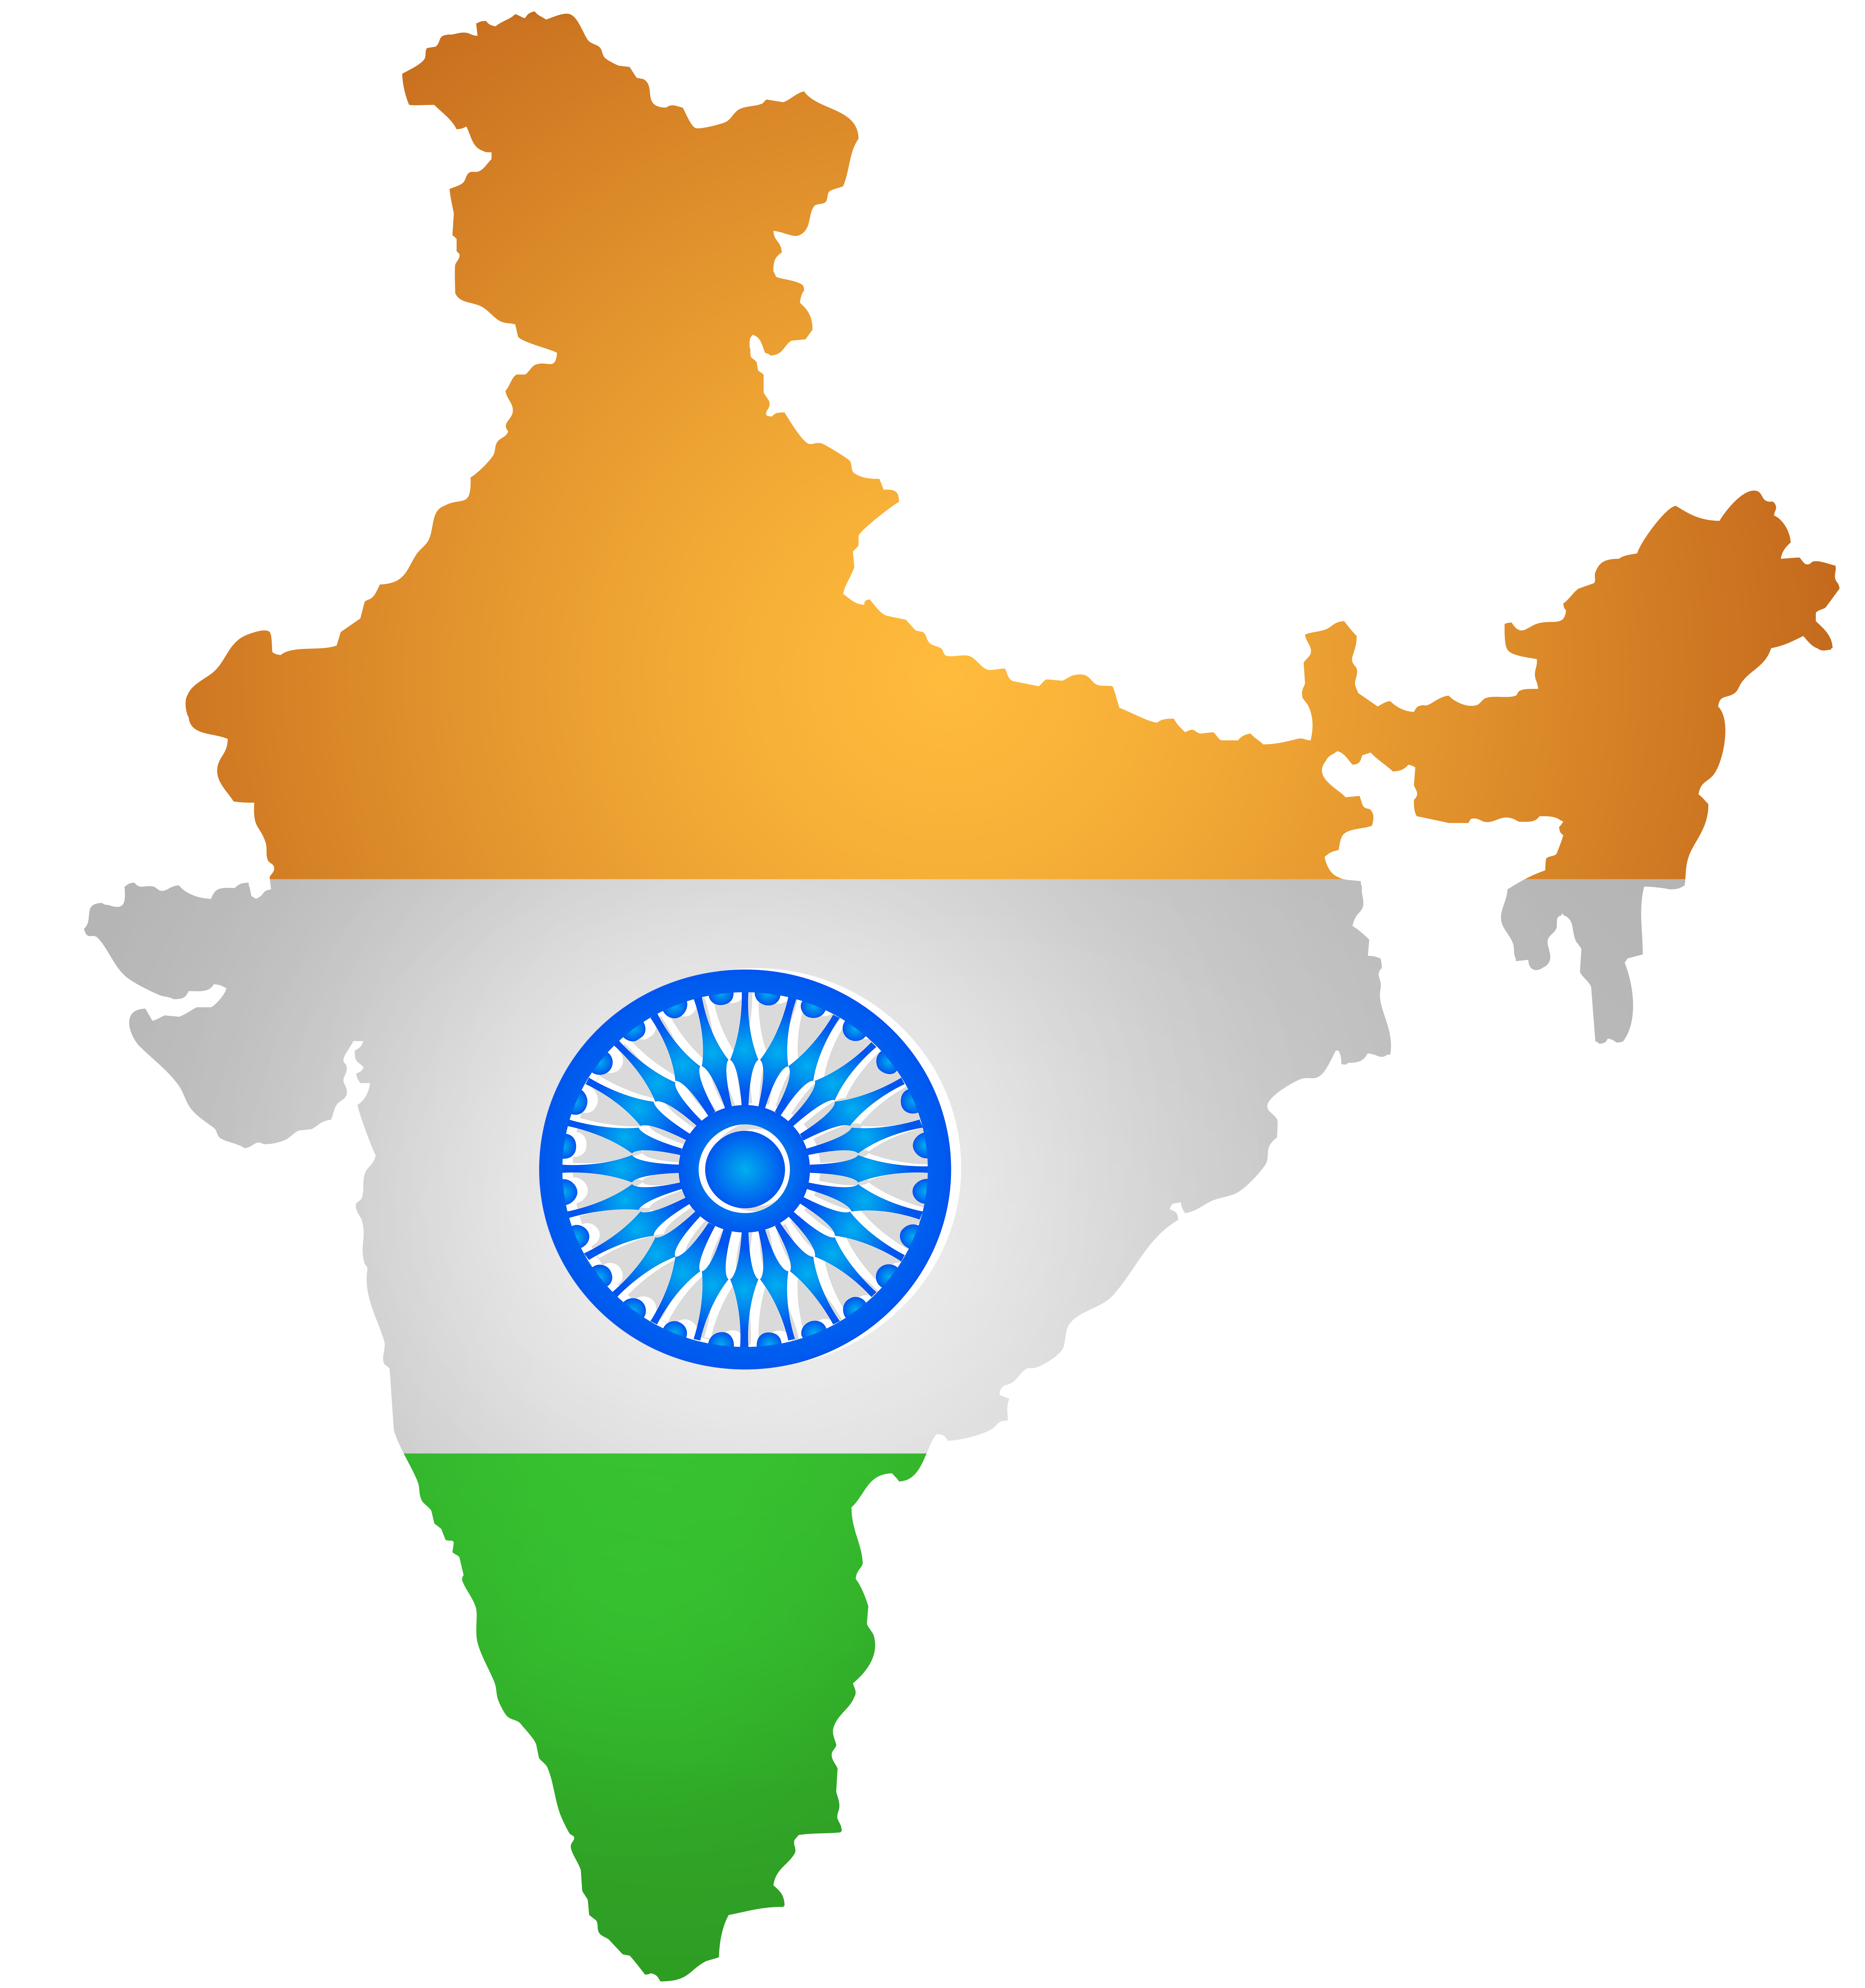 India Map Flag Png Clip Art Png Image Gallery Yopriceville High Quality Images And Transparent Png Free Clipart India Map Indian Flag Images Clip Art